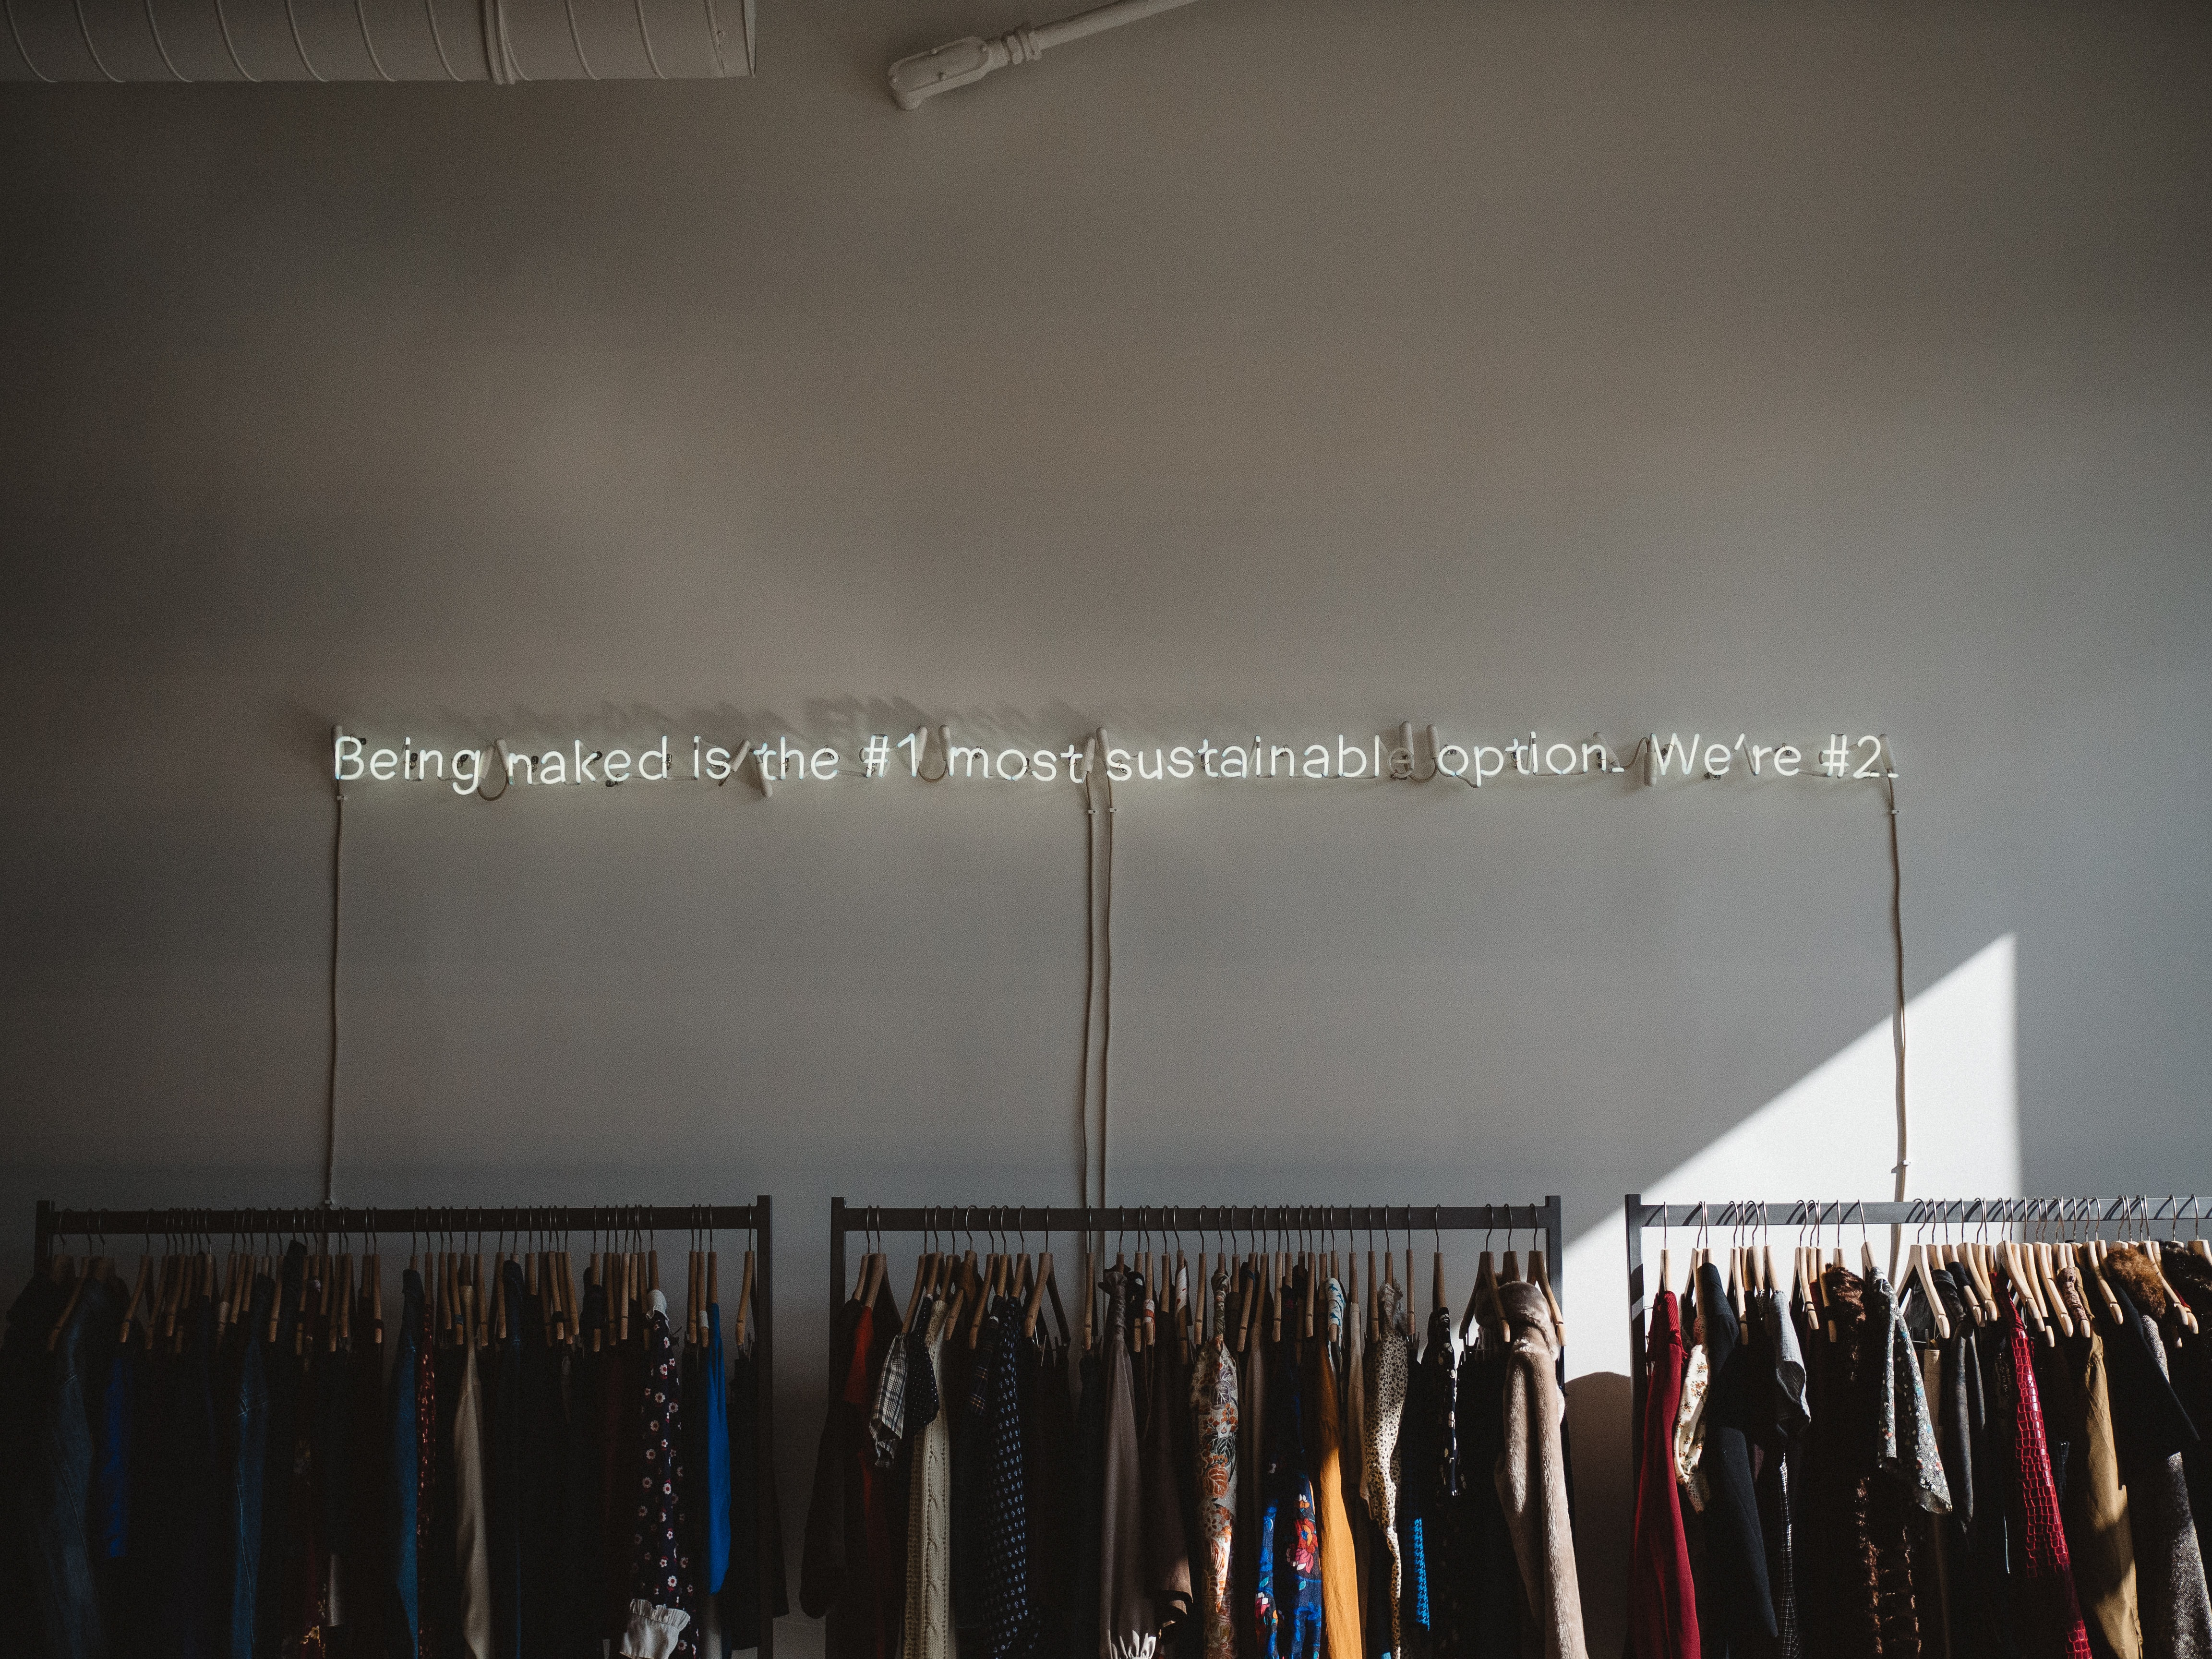 A clothes store with neon light hanging on the wall